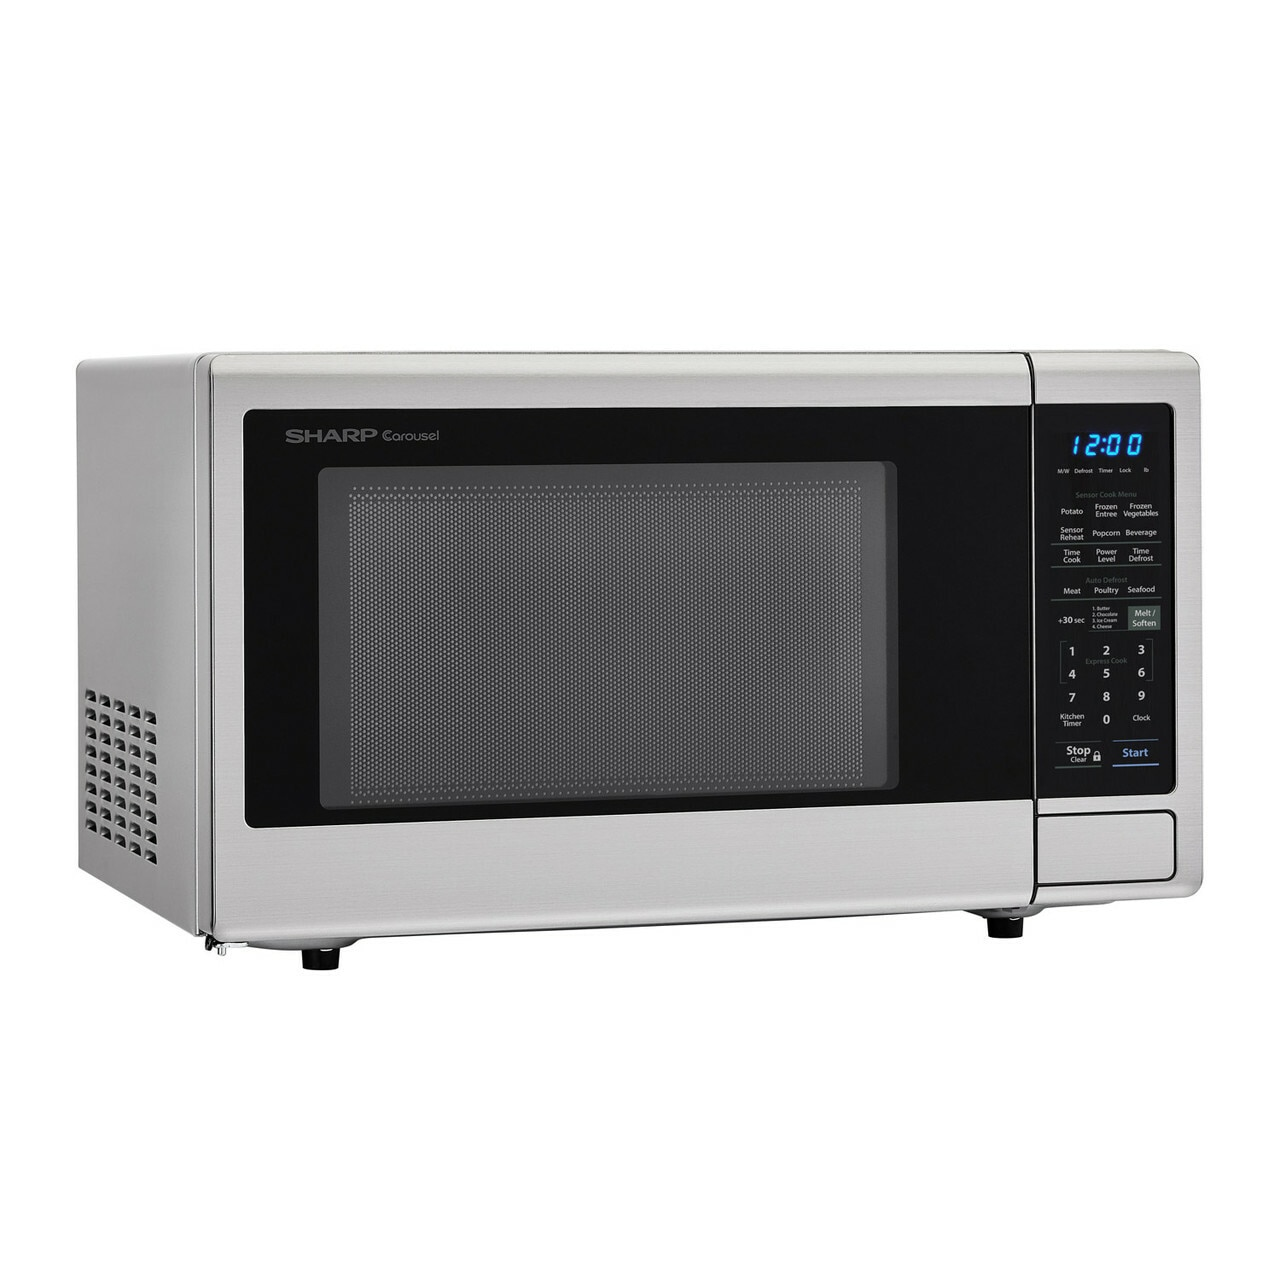 1.4 cu. ft. Sharp Stainless Steel Countertop Microwave (SMC1442CS) – right angle view